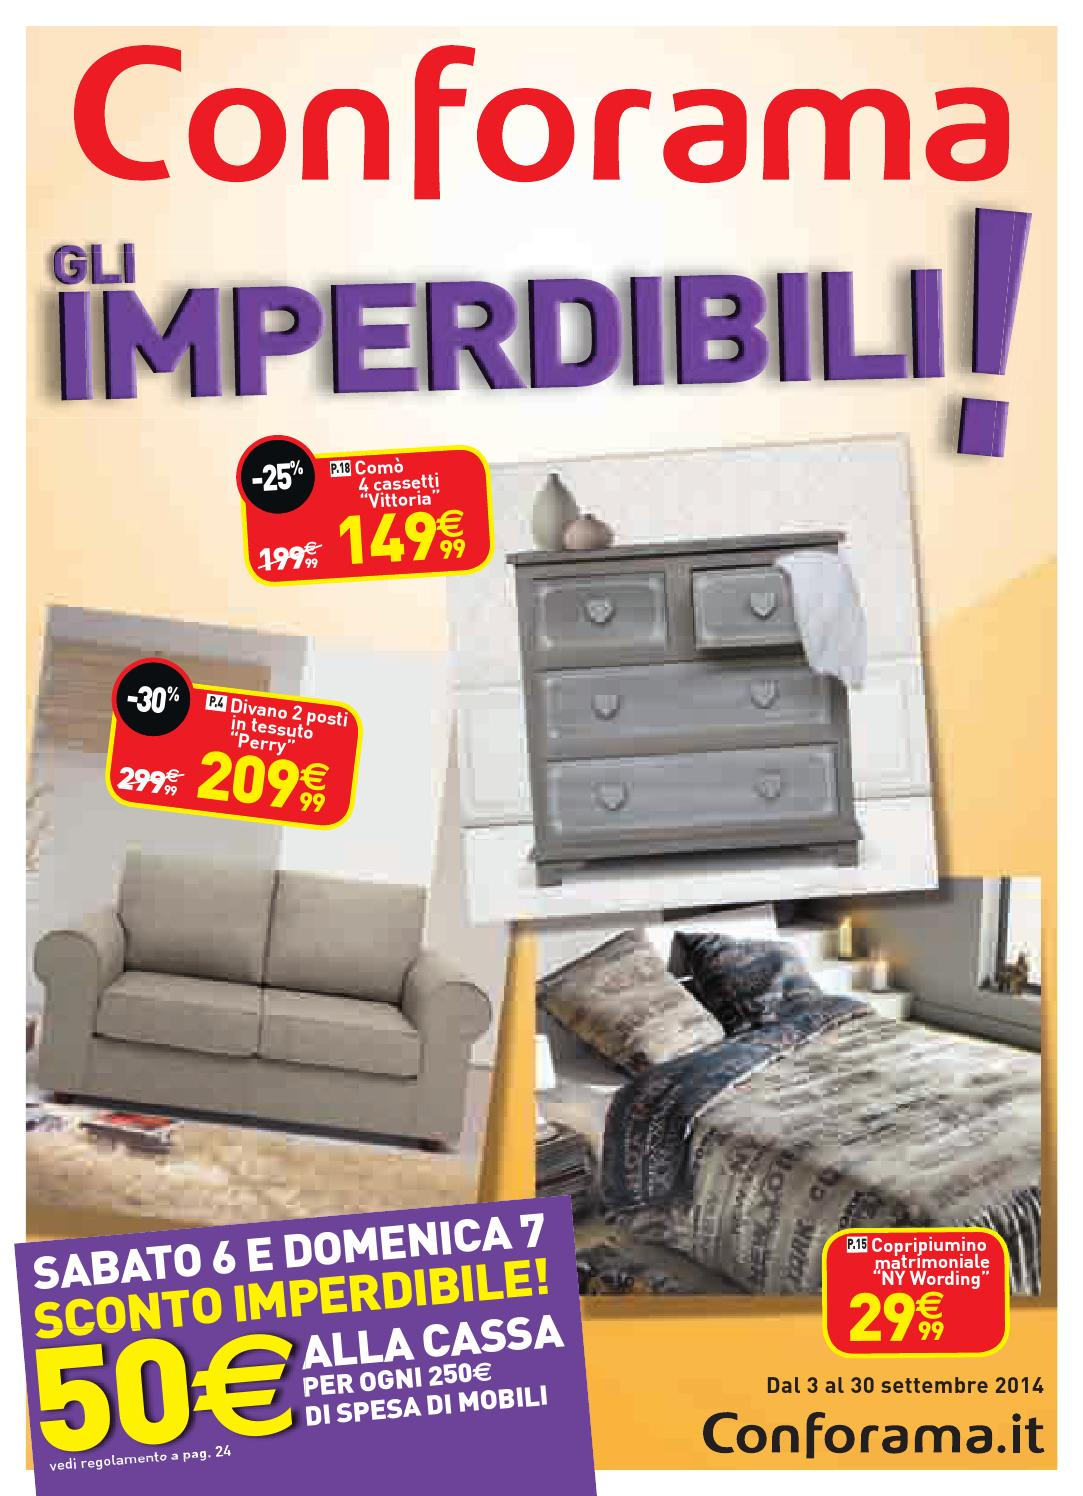 Conforama catalogo gli imperdibili by Mobilpro - issuu